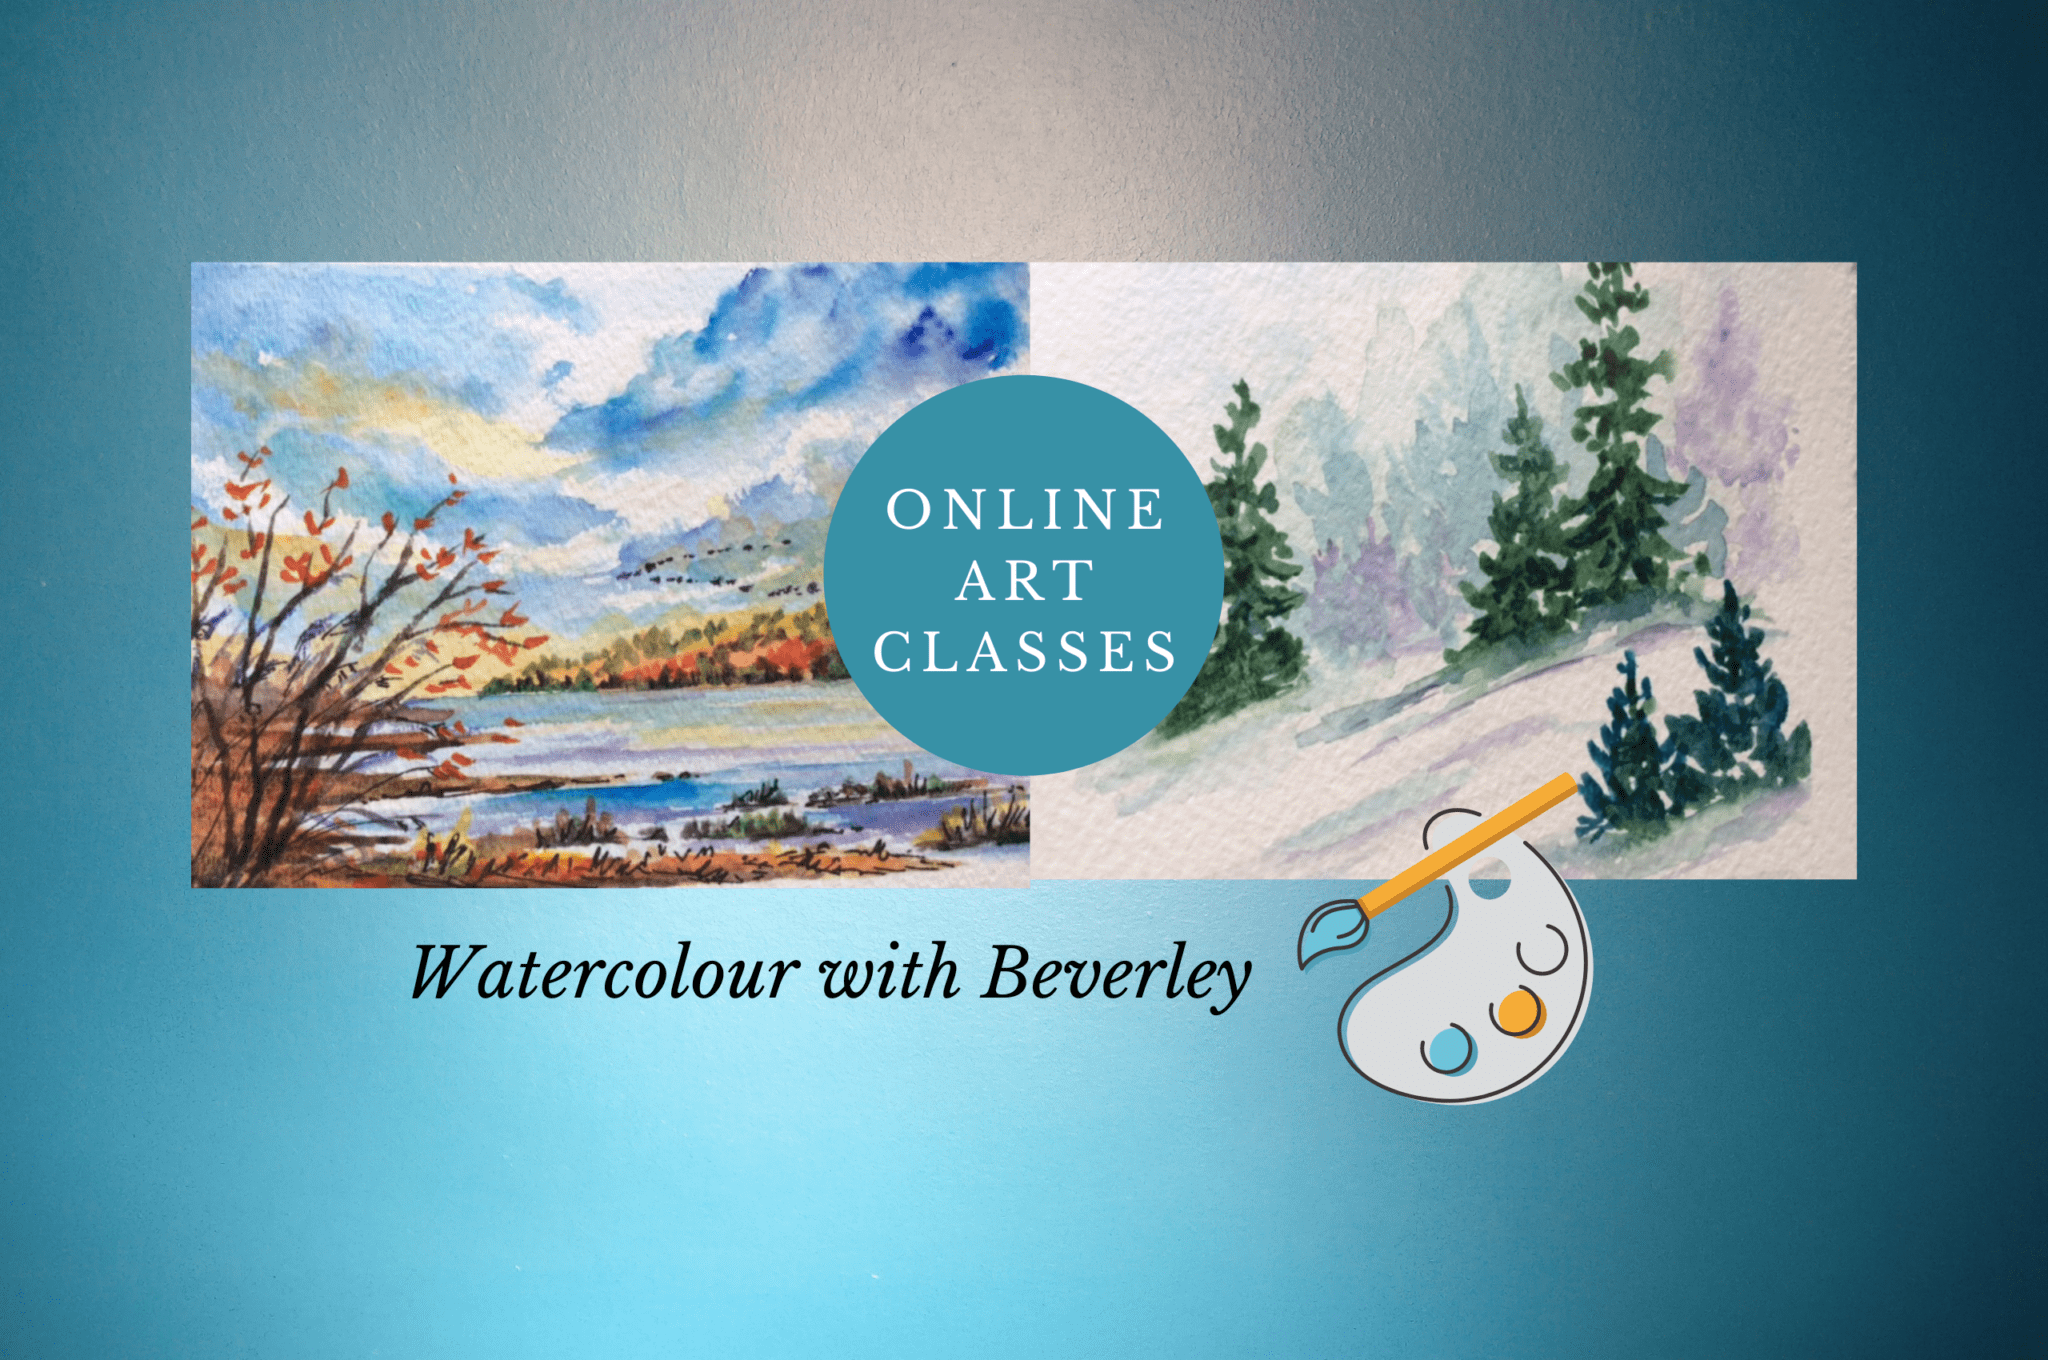 online art classes - watercolour with Beverley